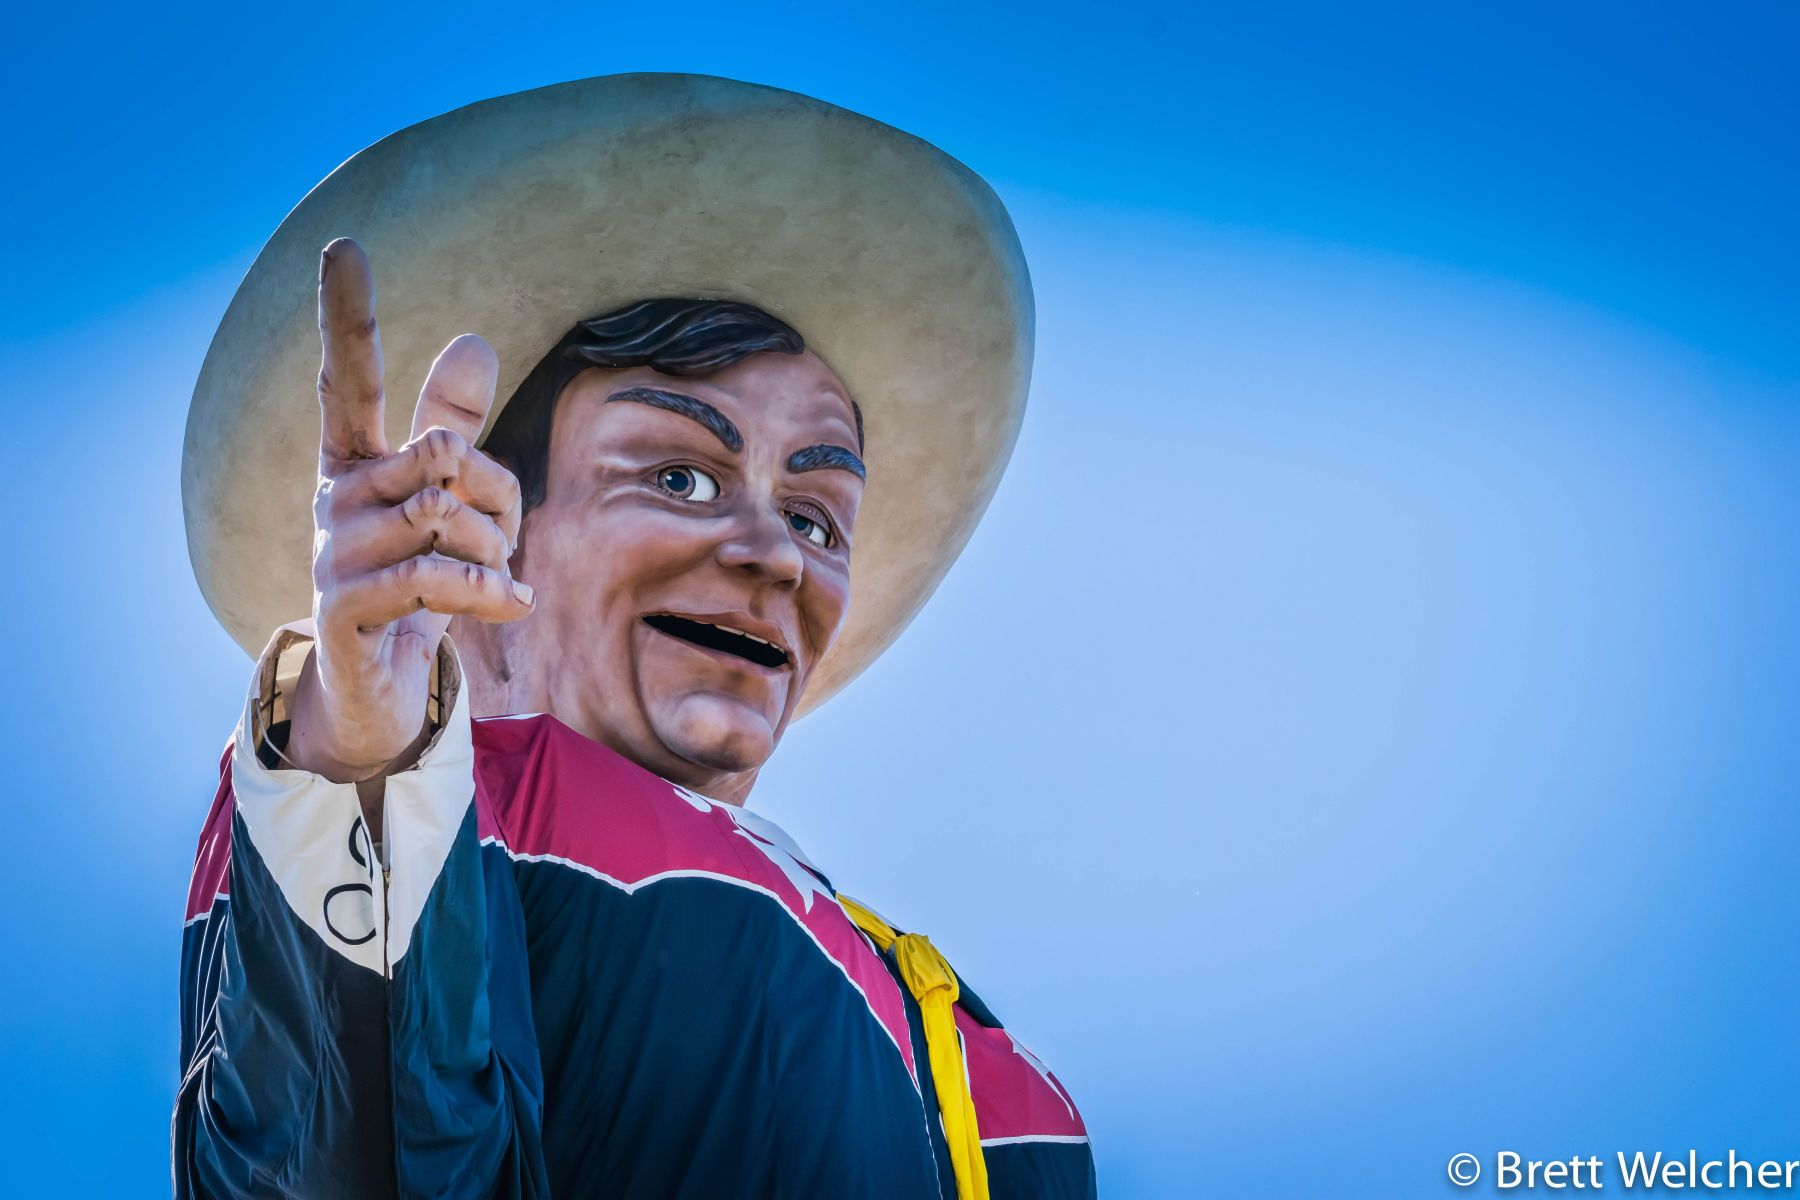 Big Tex is a 55-foot tall statue and marketing icon of the State Fair of Texas. Visitors from near and far travel annually to admire the famous statue and his 95 gallon hat.Big Tex's 1952 State Fair debut was auspicious. Speechless that first year, a littl